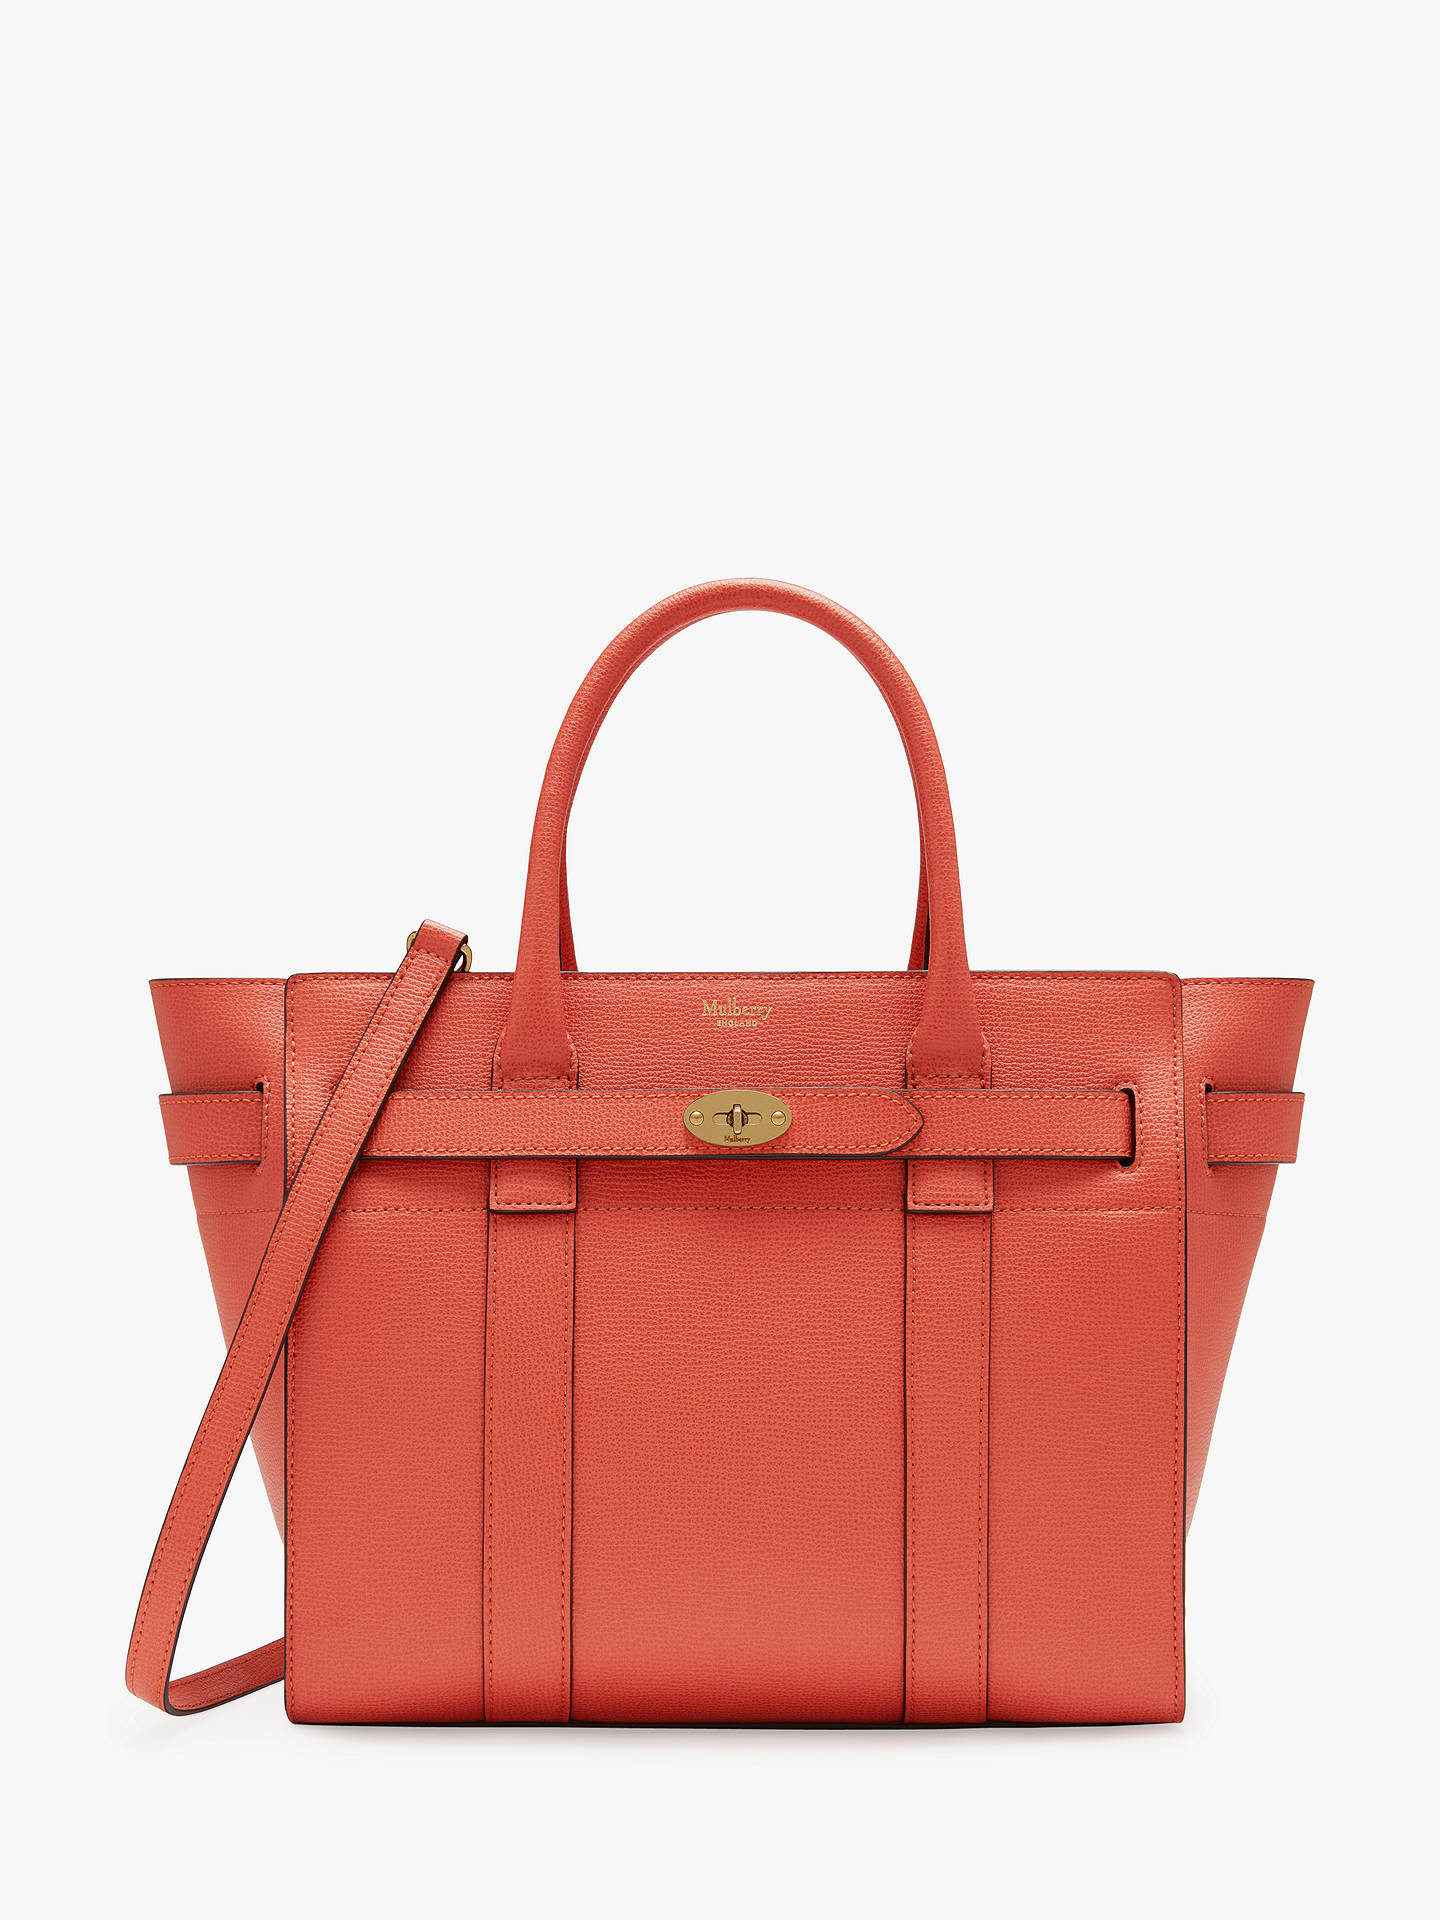 c25f1c323be BuyMulberry Small Bayswater Zipped Classic Grain Leather Tote Bag, Coral  Rose Online at johnlewis.